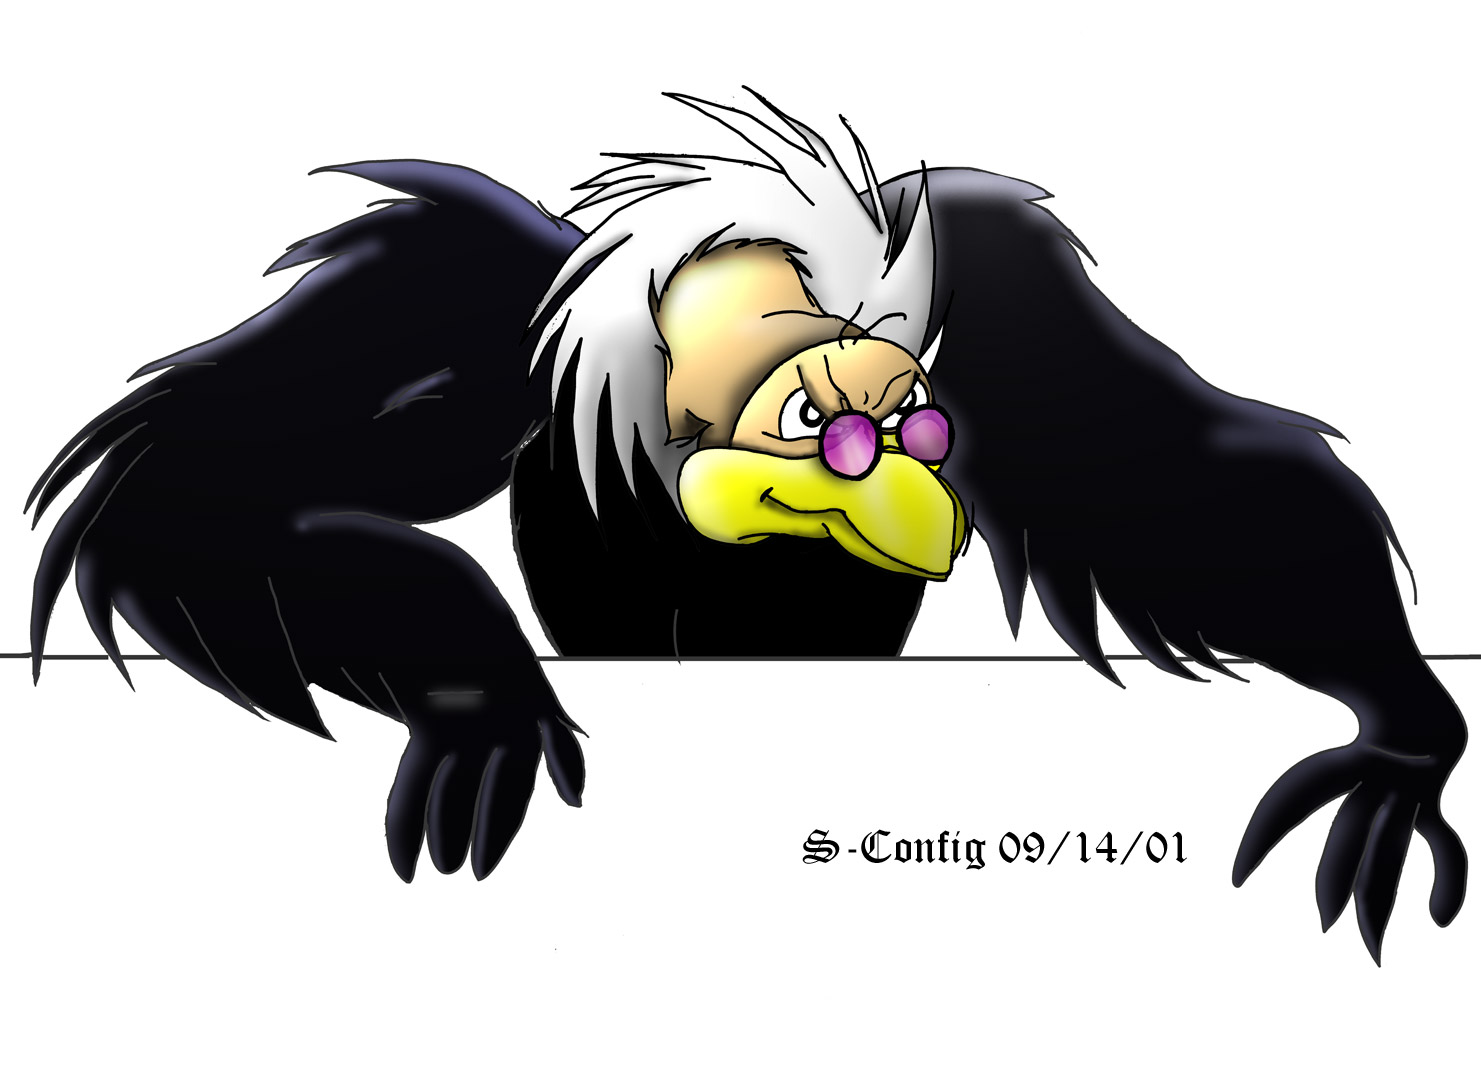 Vinney the Vulture 2-d Photoshop complete.